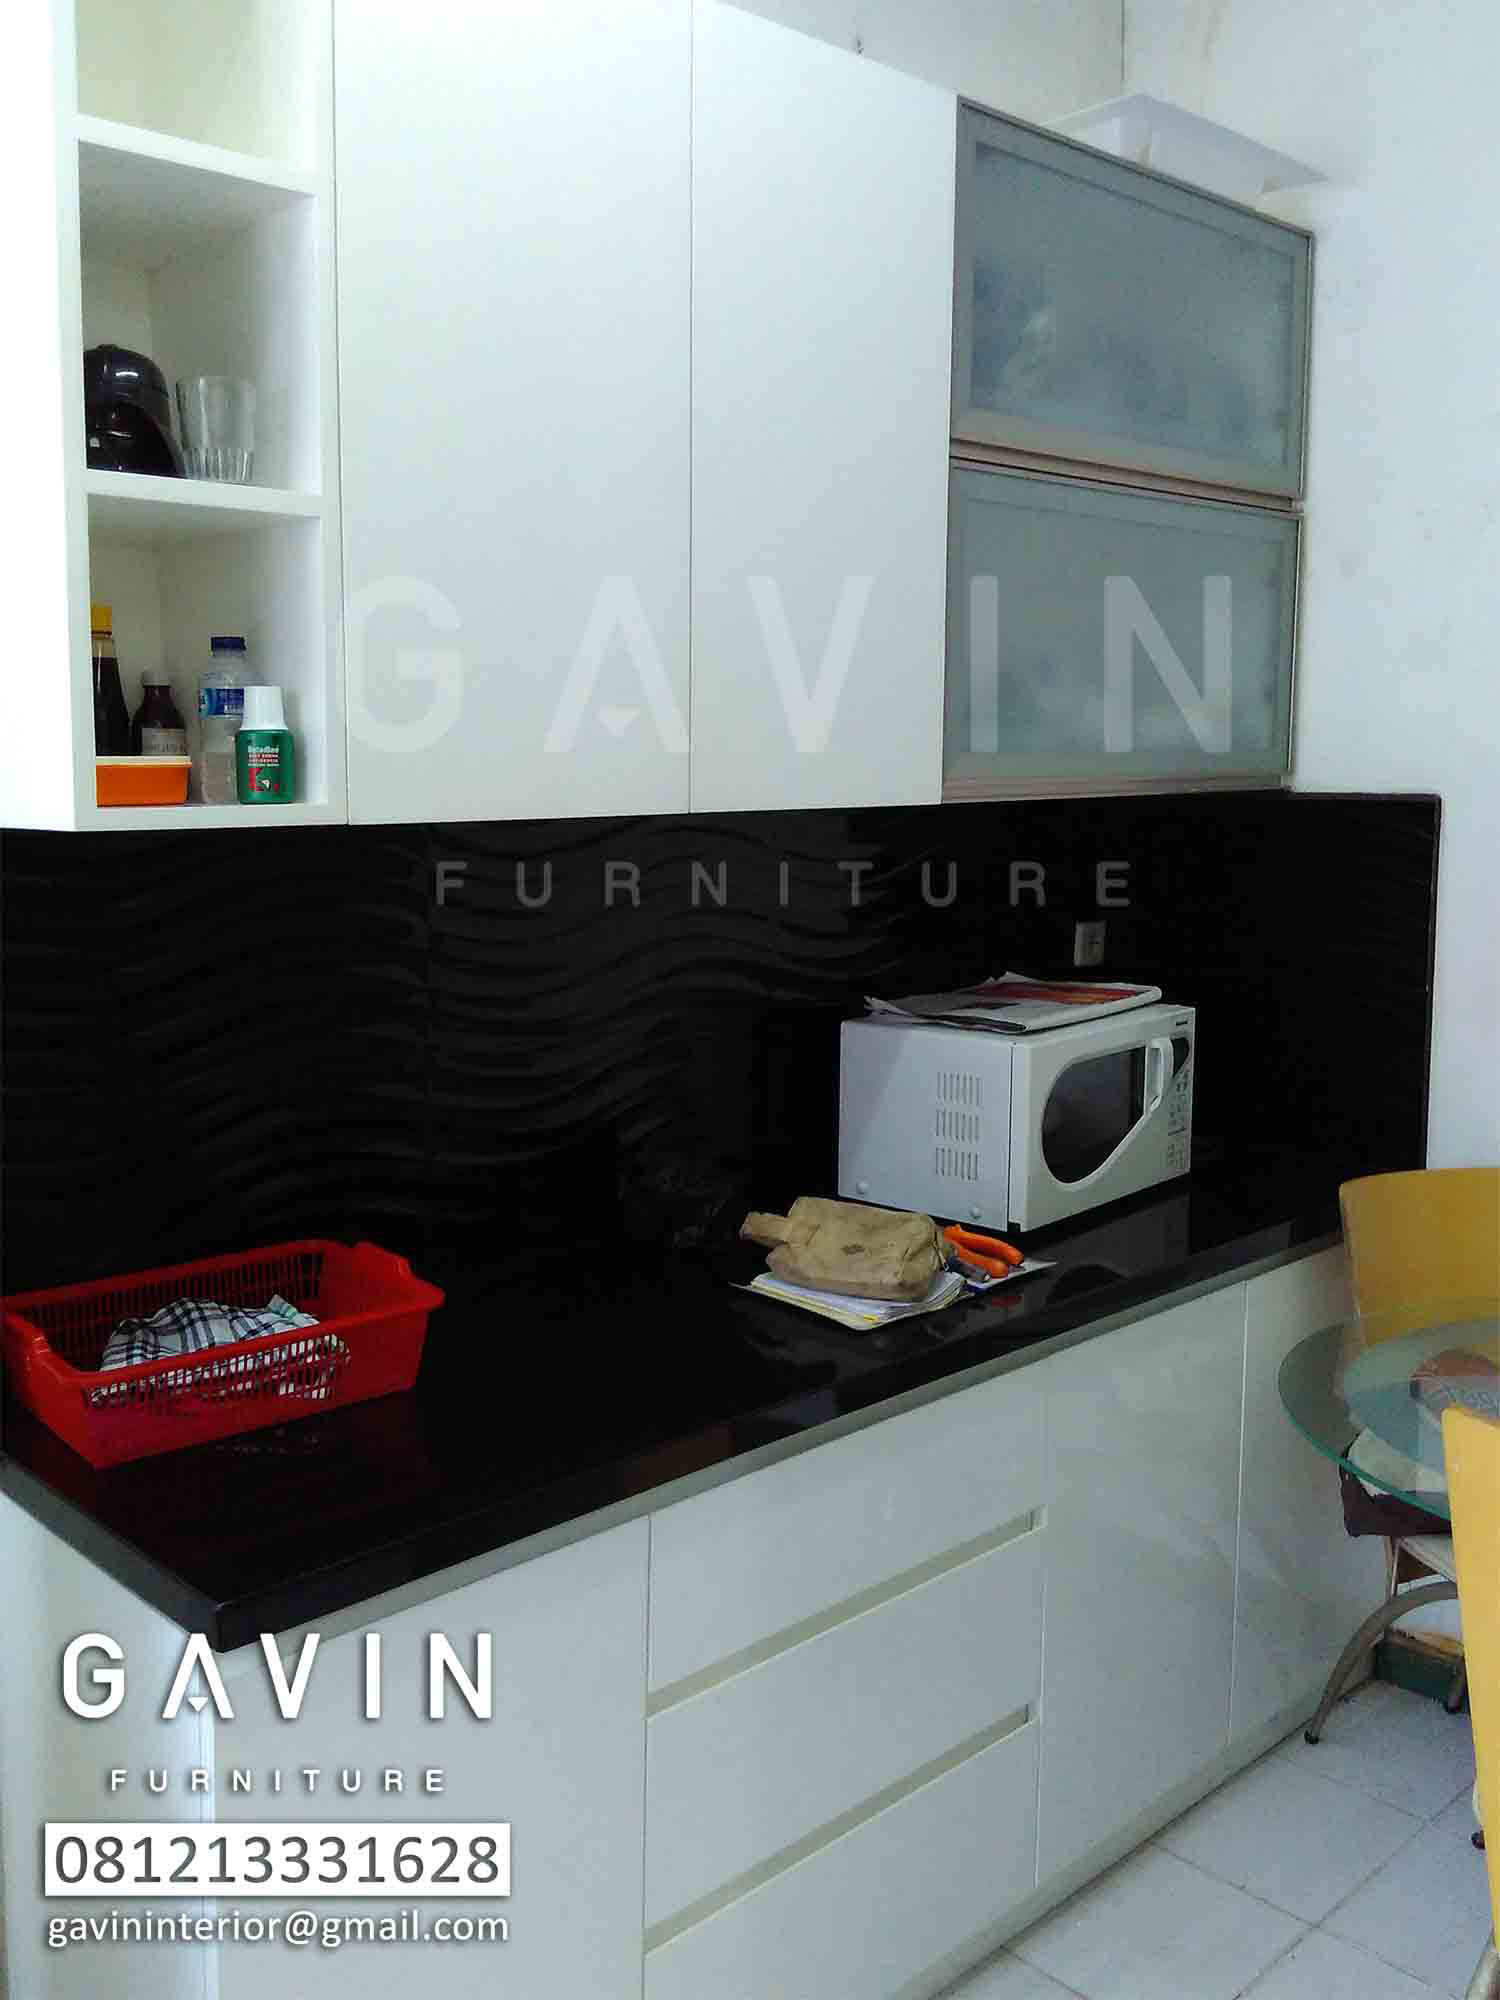 Daftar harga kitchen set minimalis murah kitchen set for Harga paket kitchen set minimalis